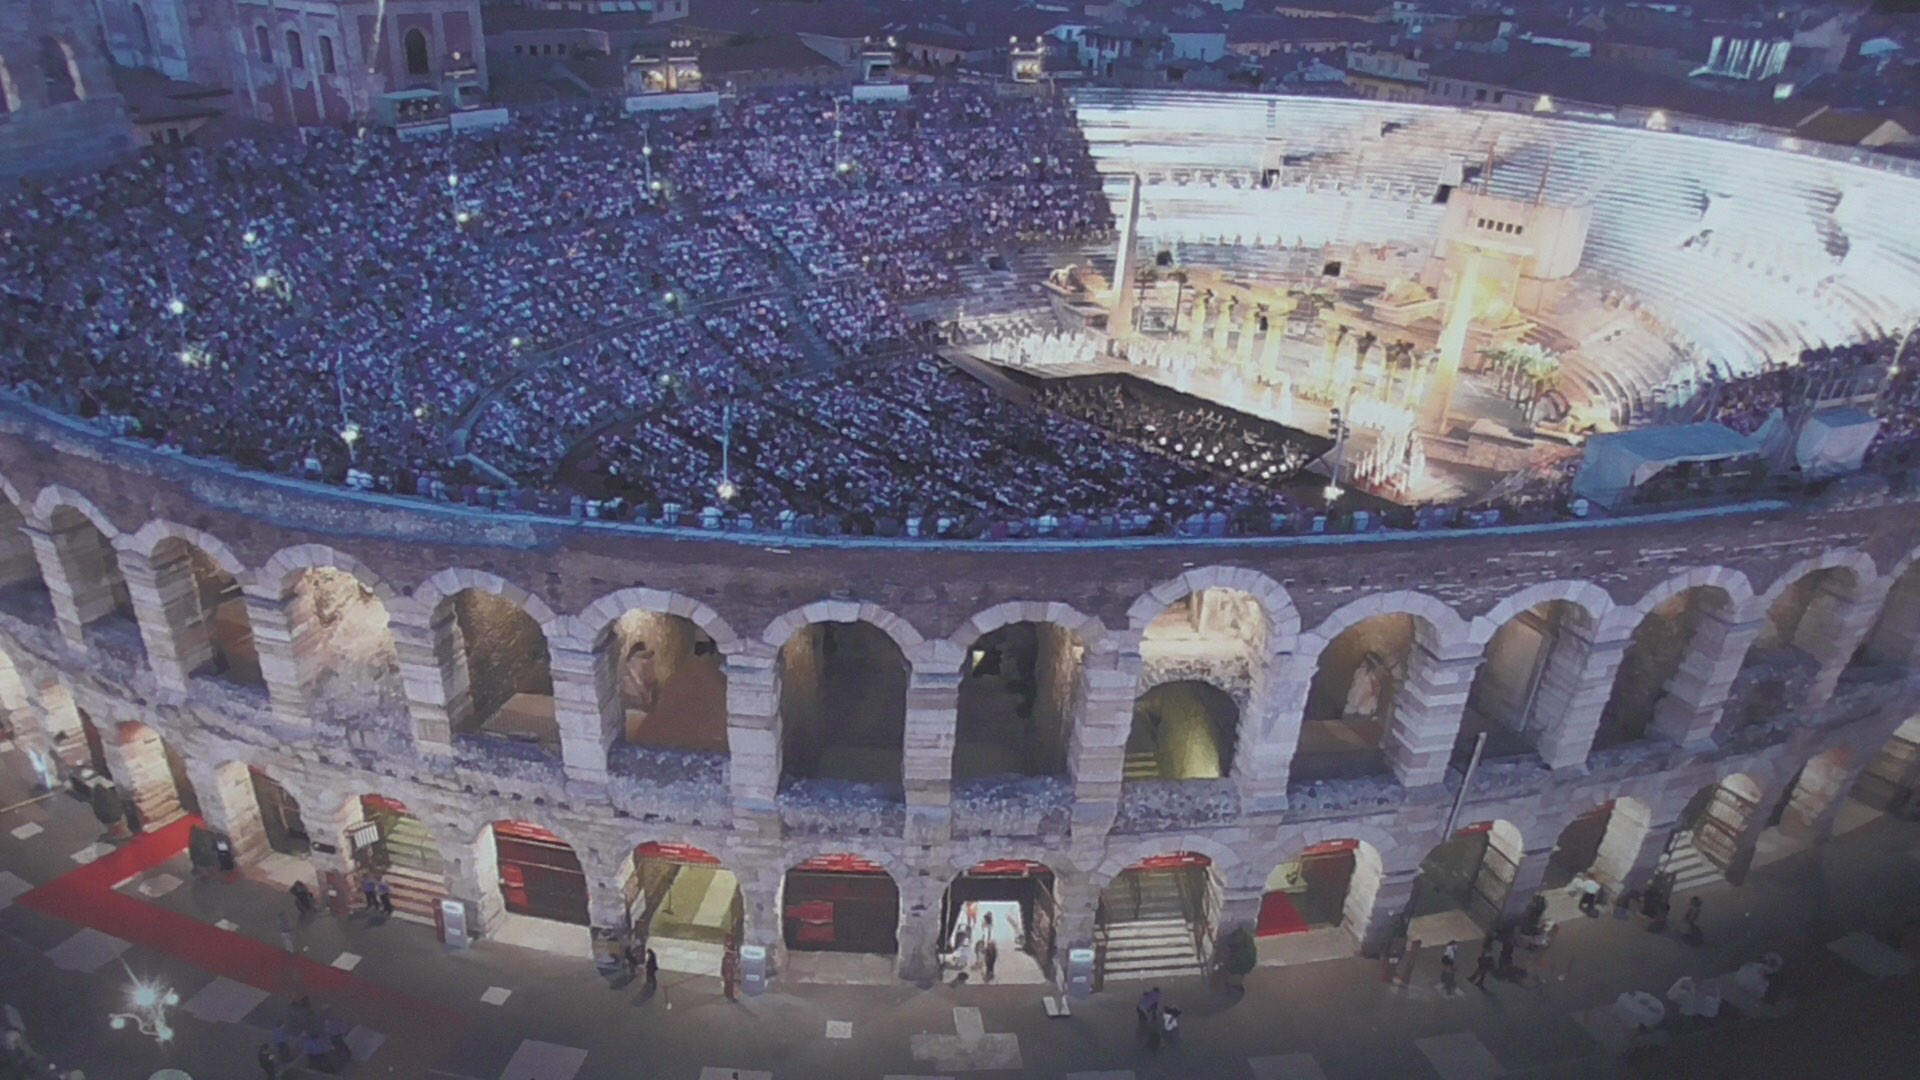 The Arena at Verona